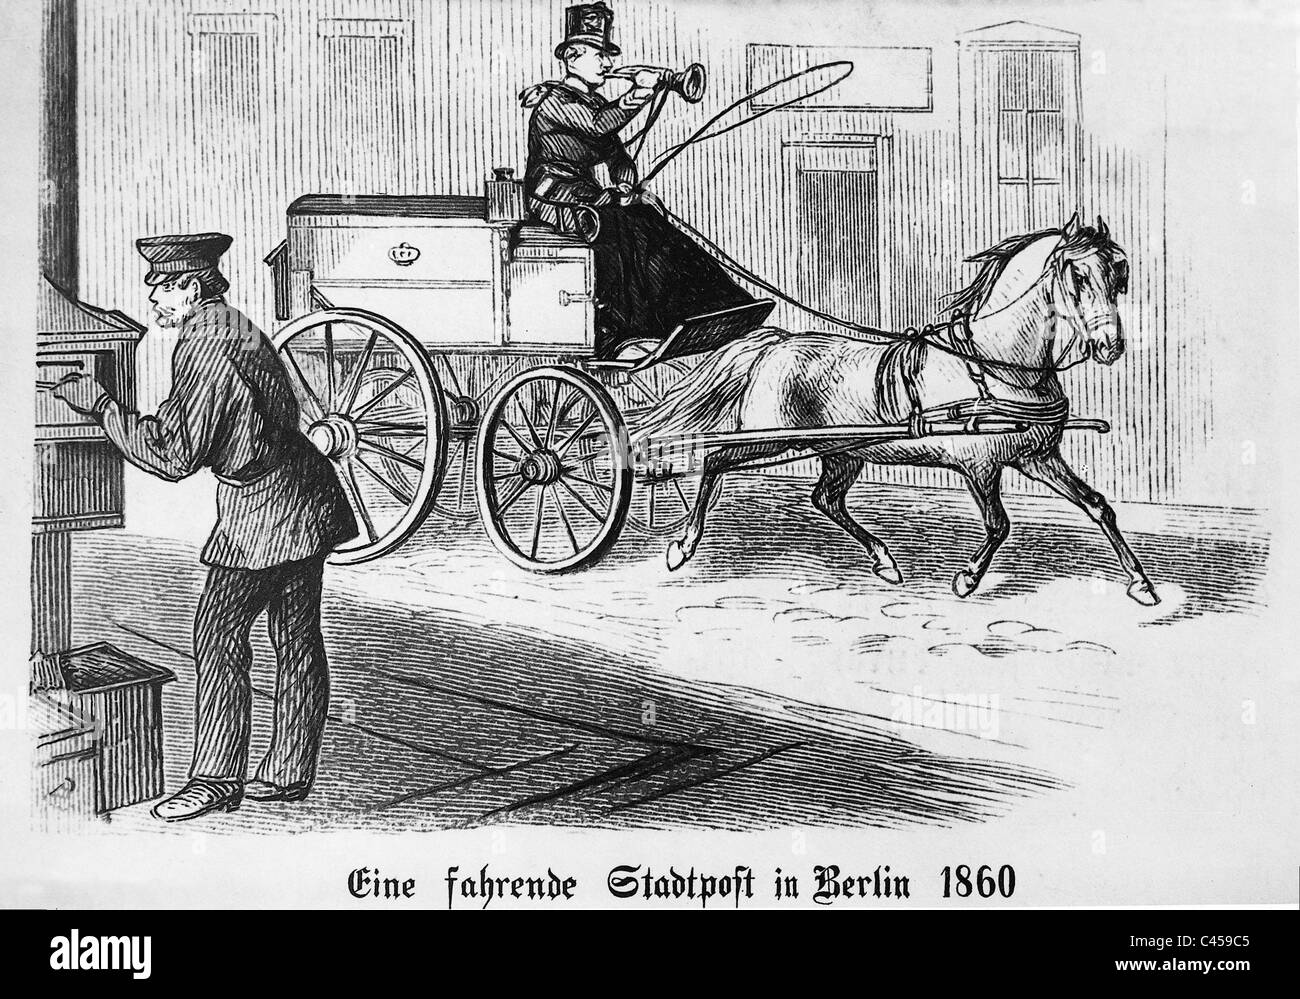 Mail car in Berlin, 1860 - Stock Image